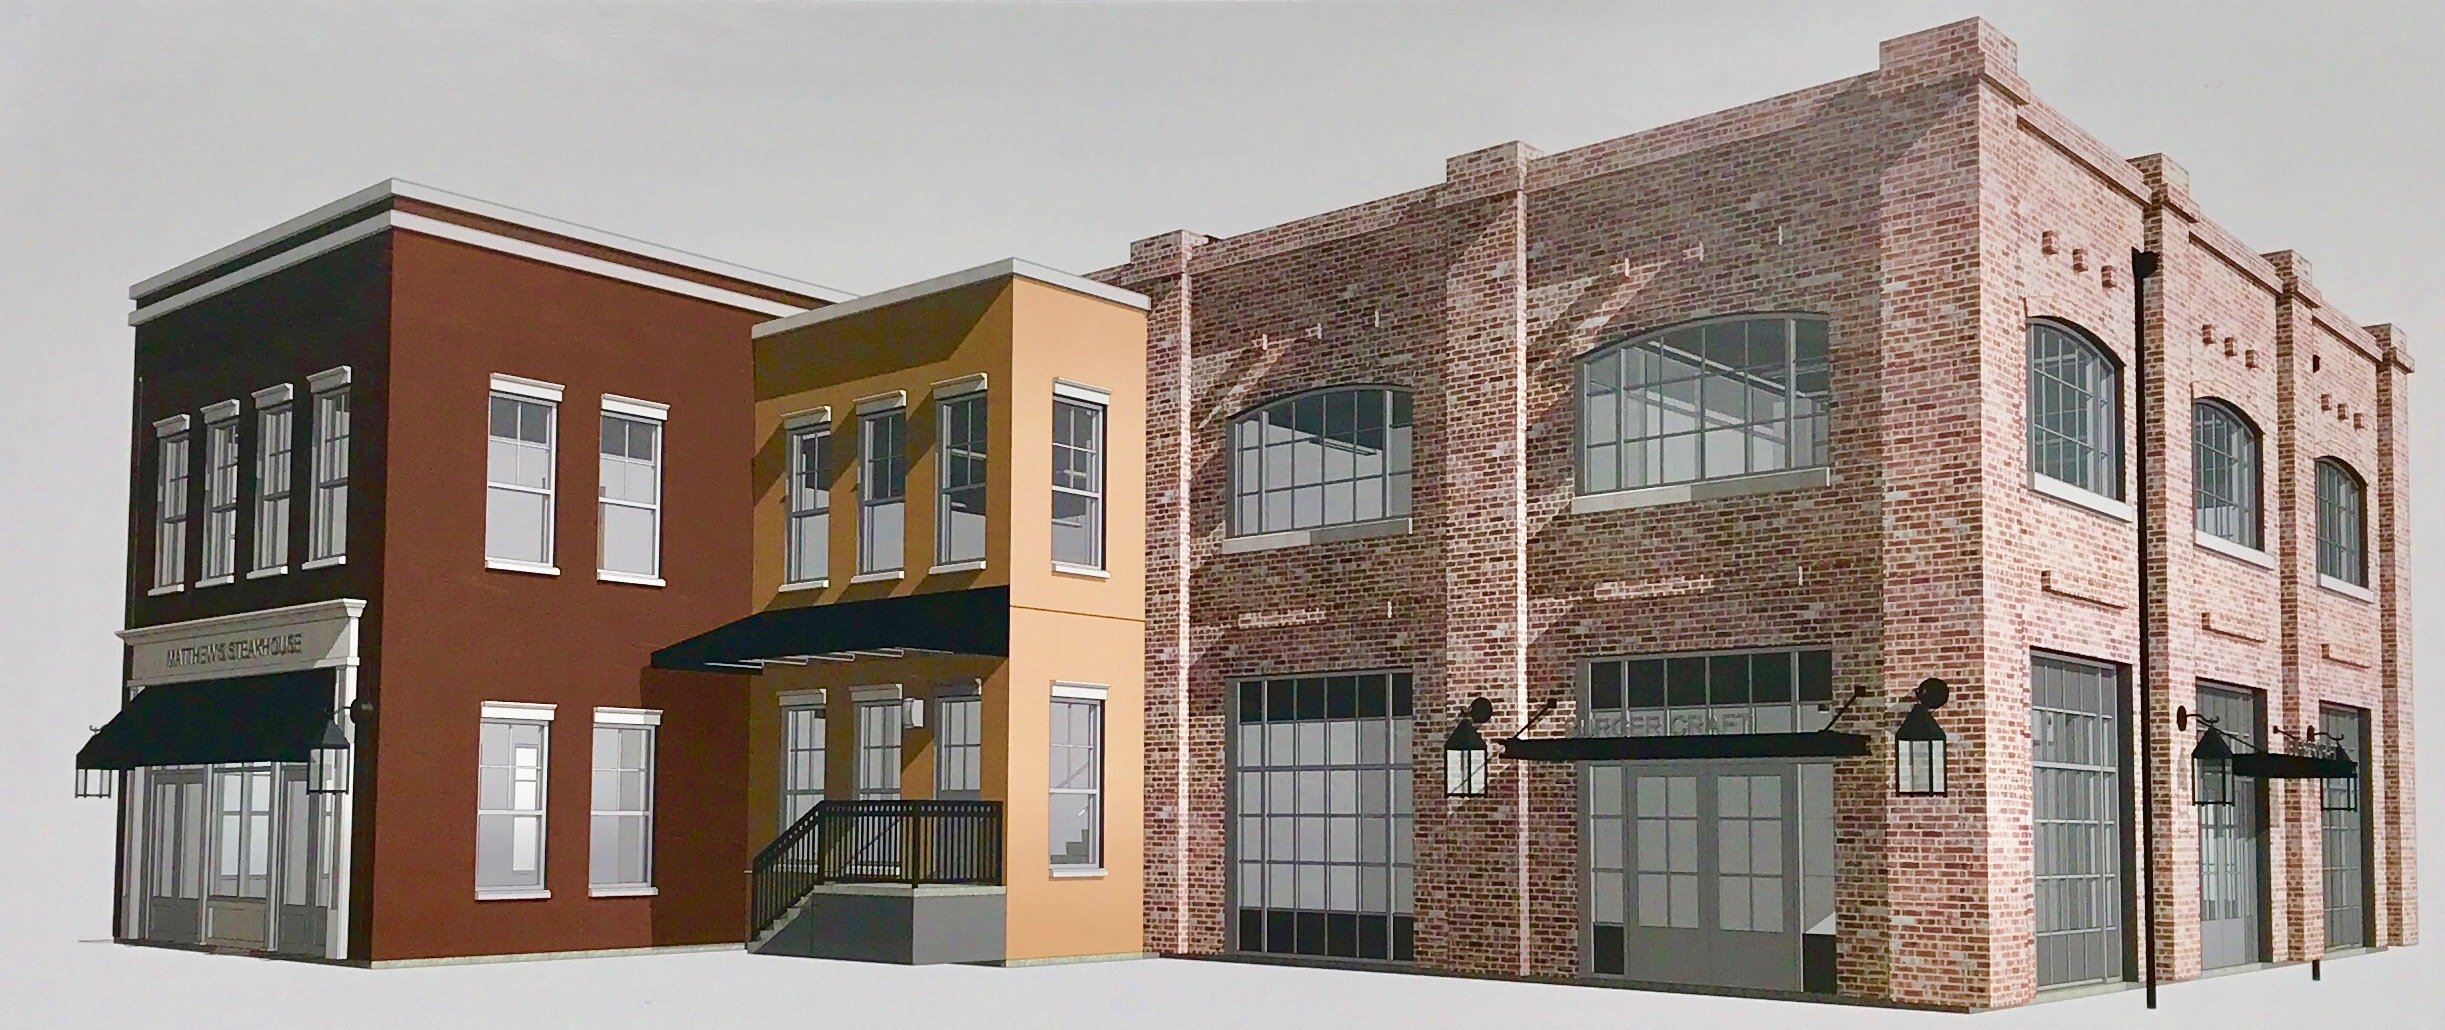 Awesome New Developments On Plant Street In Downtown Winter Garden